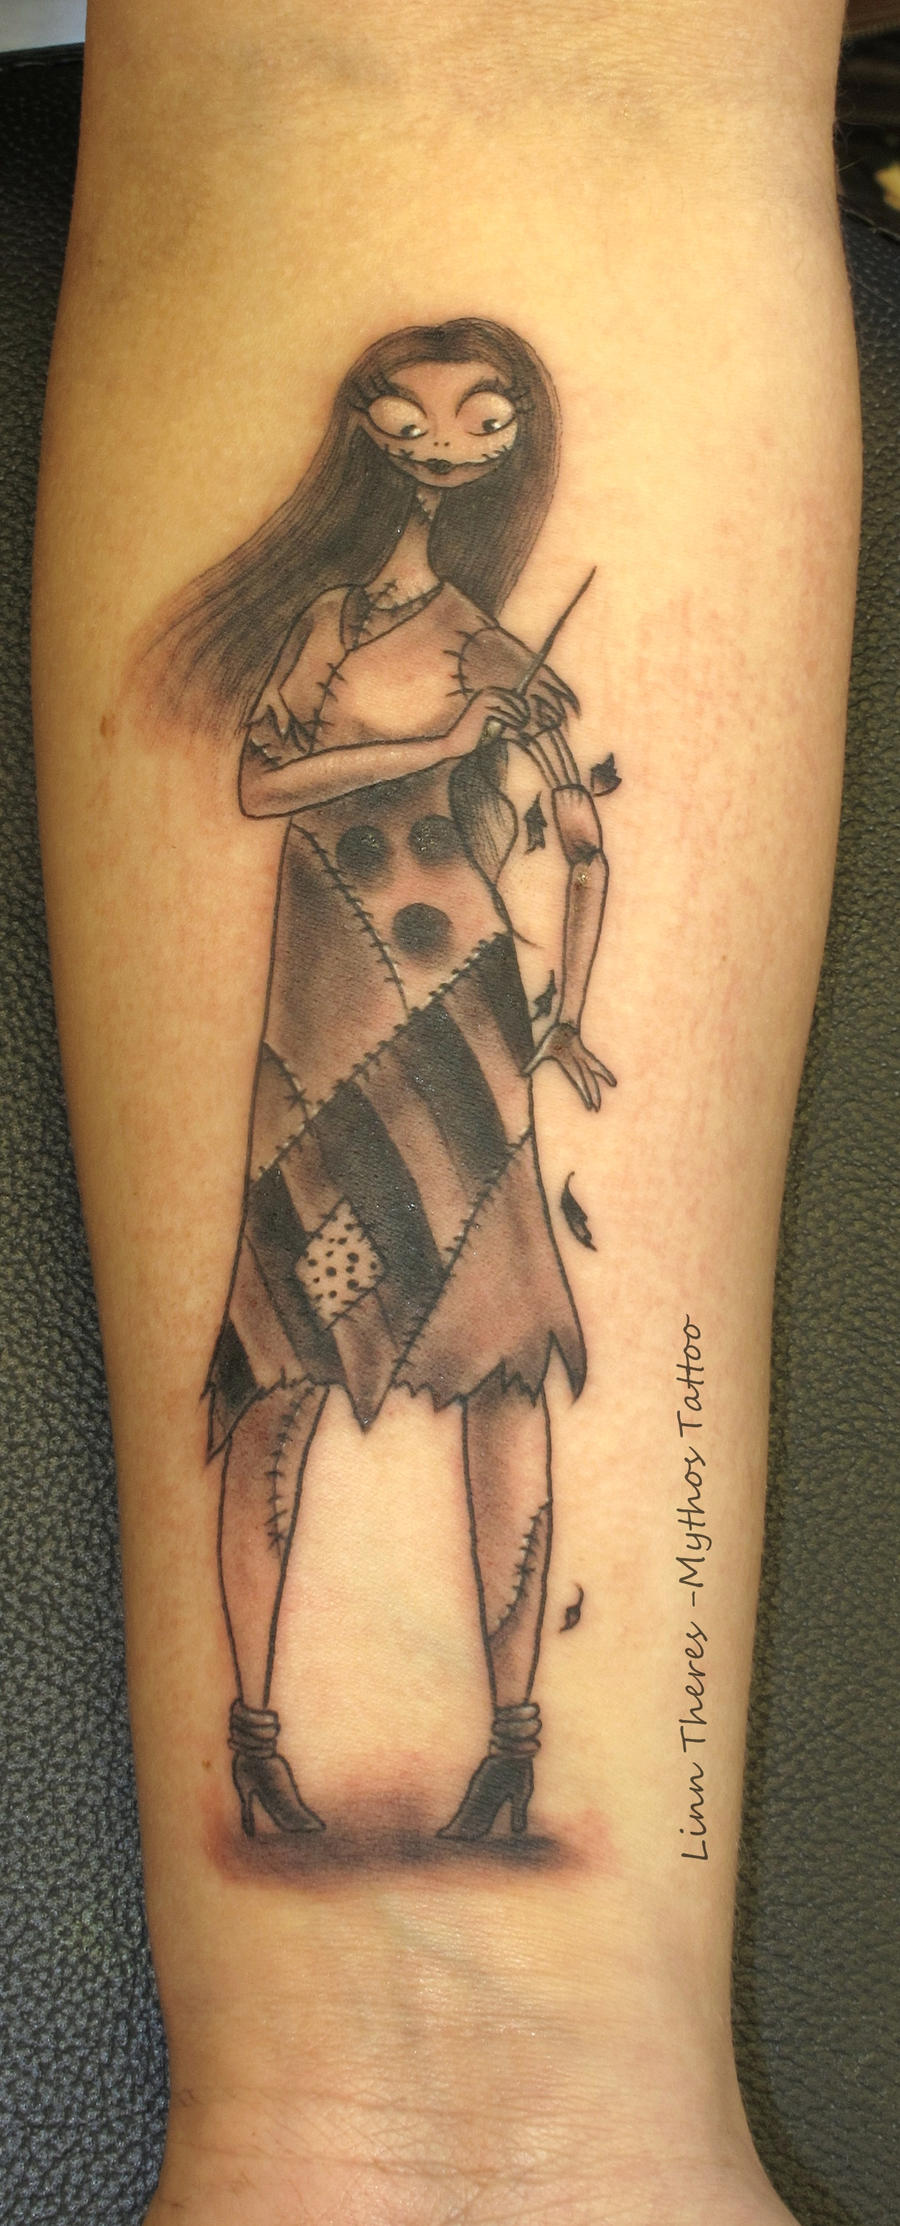 The Nightmare Before Christmas Sally Tattoo, disneyink - My ...